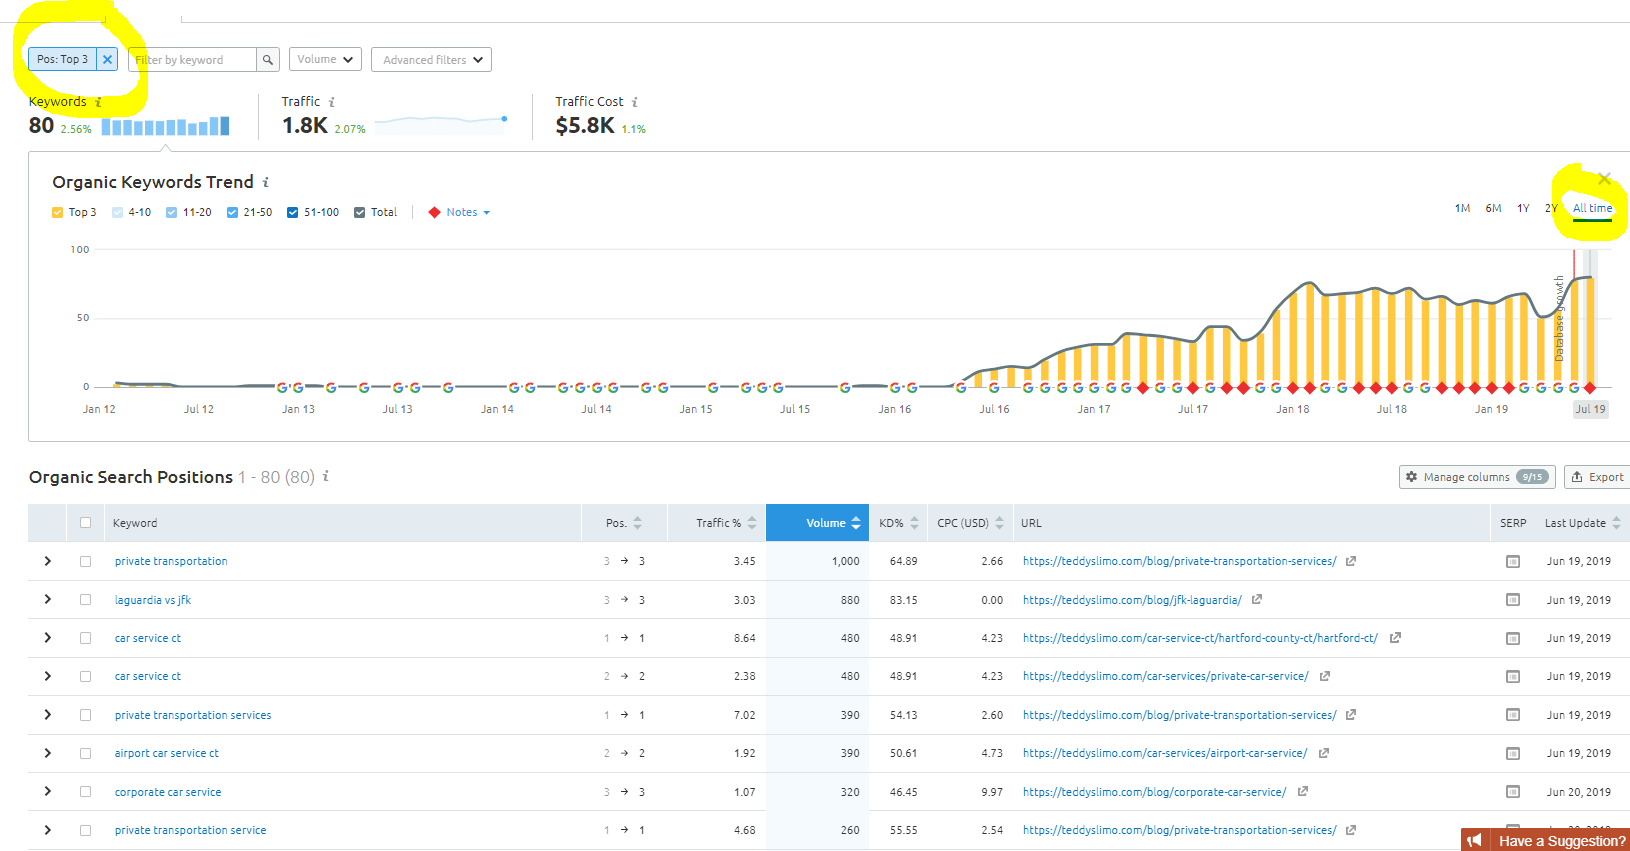 Teddys Keyword Growth - Top 3 Positions in Search